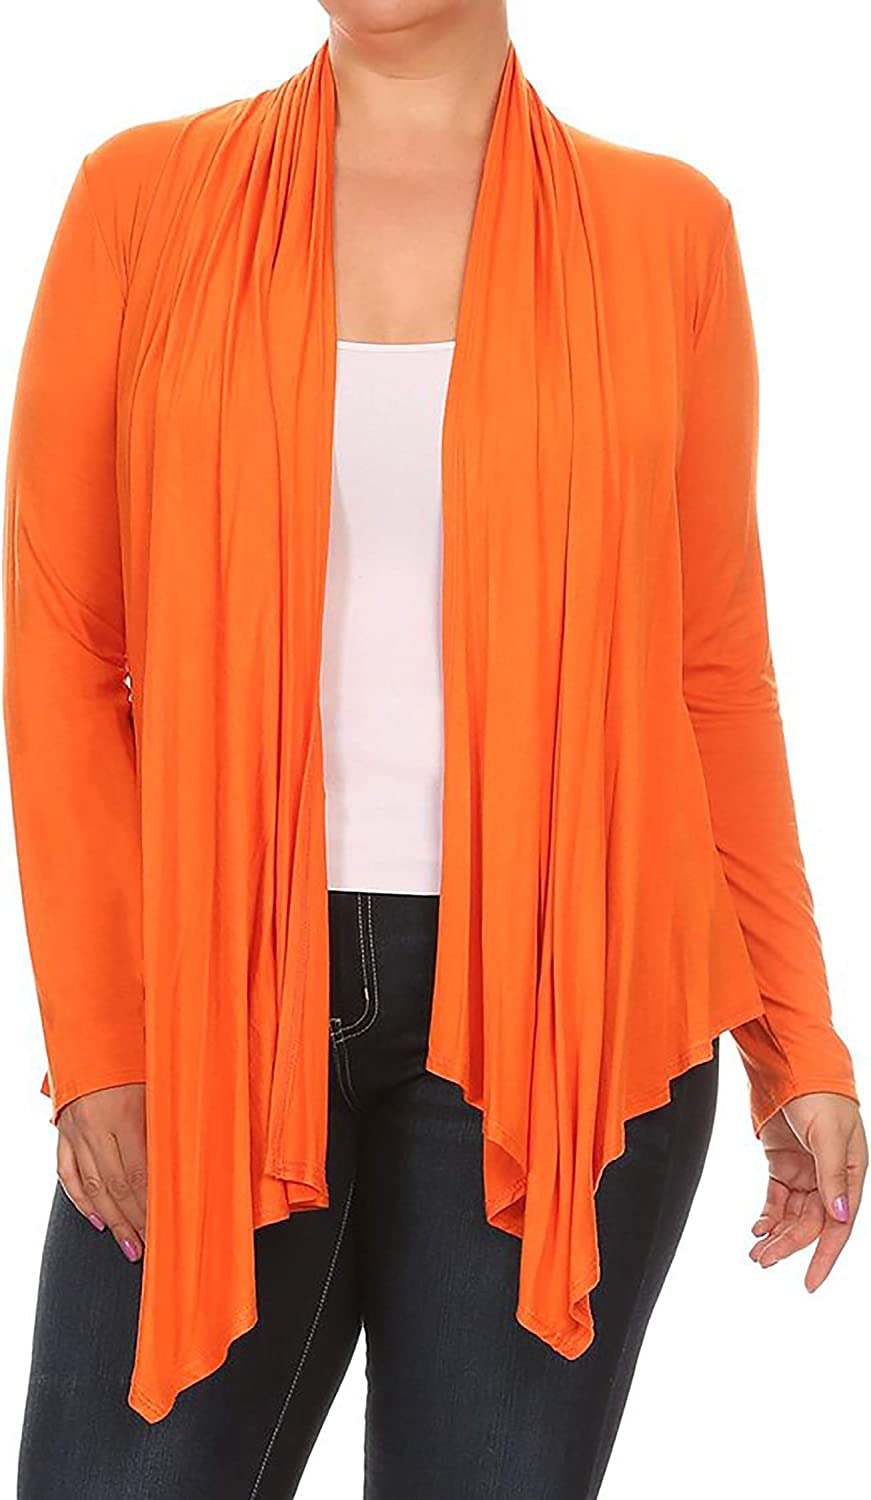 Women's Plus Size Solid Casual Long Sleeve Drape Open Front Jacket Cardigan/Made in USA